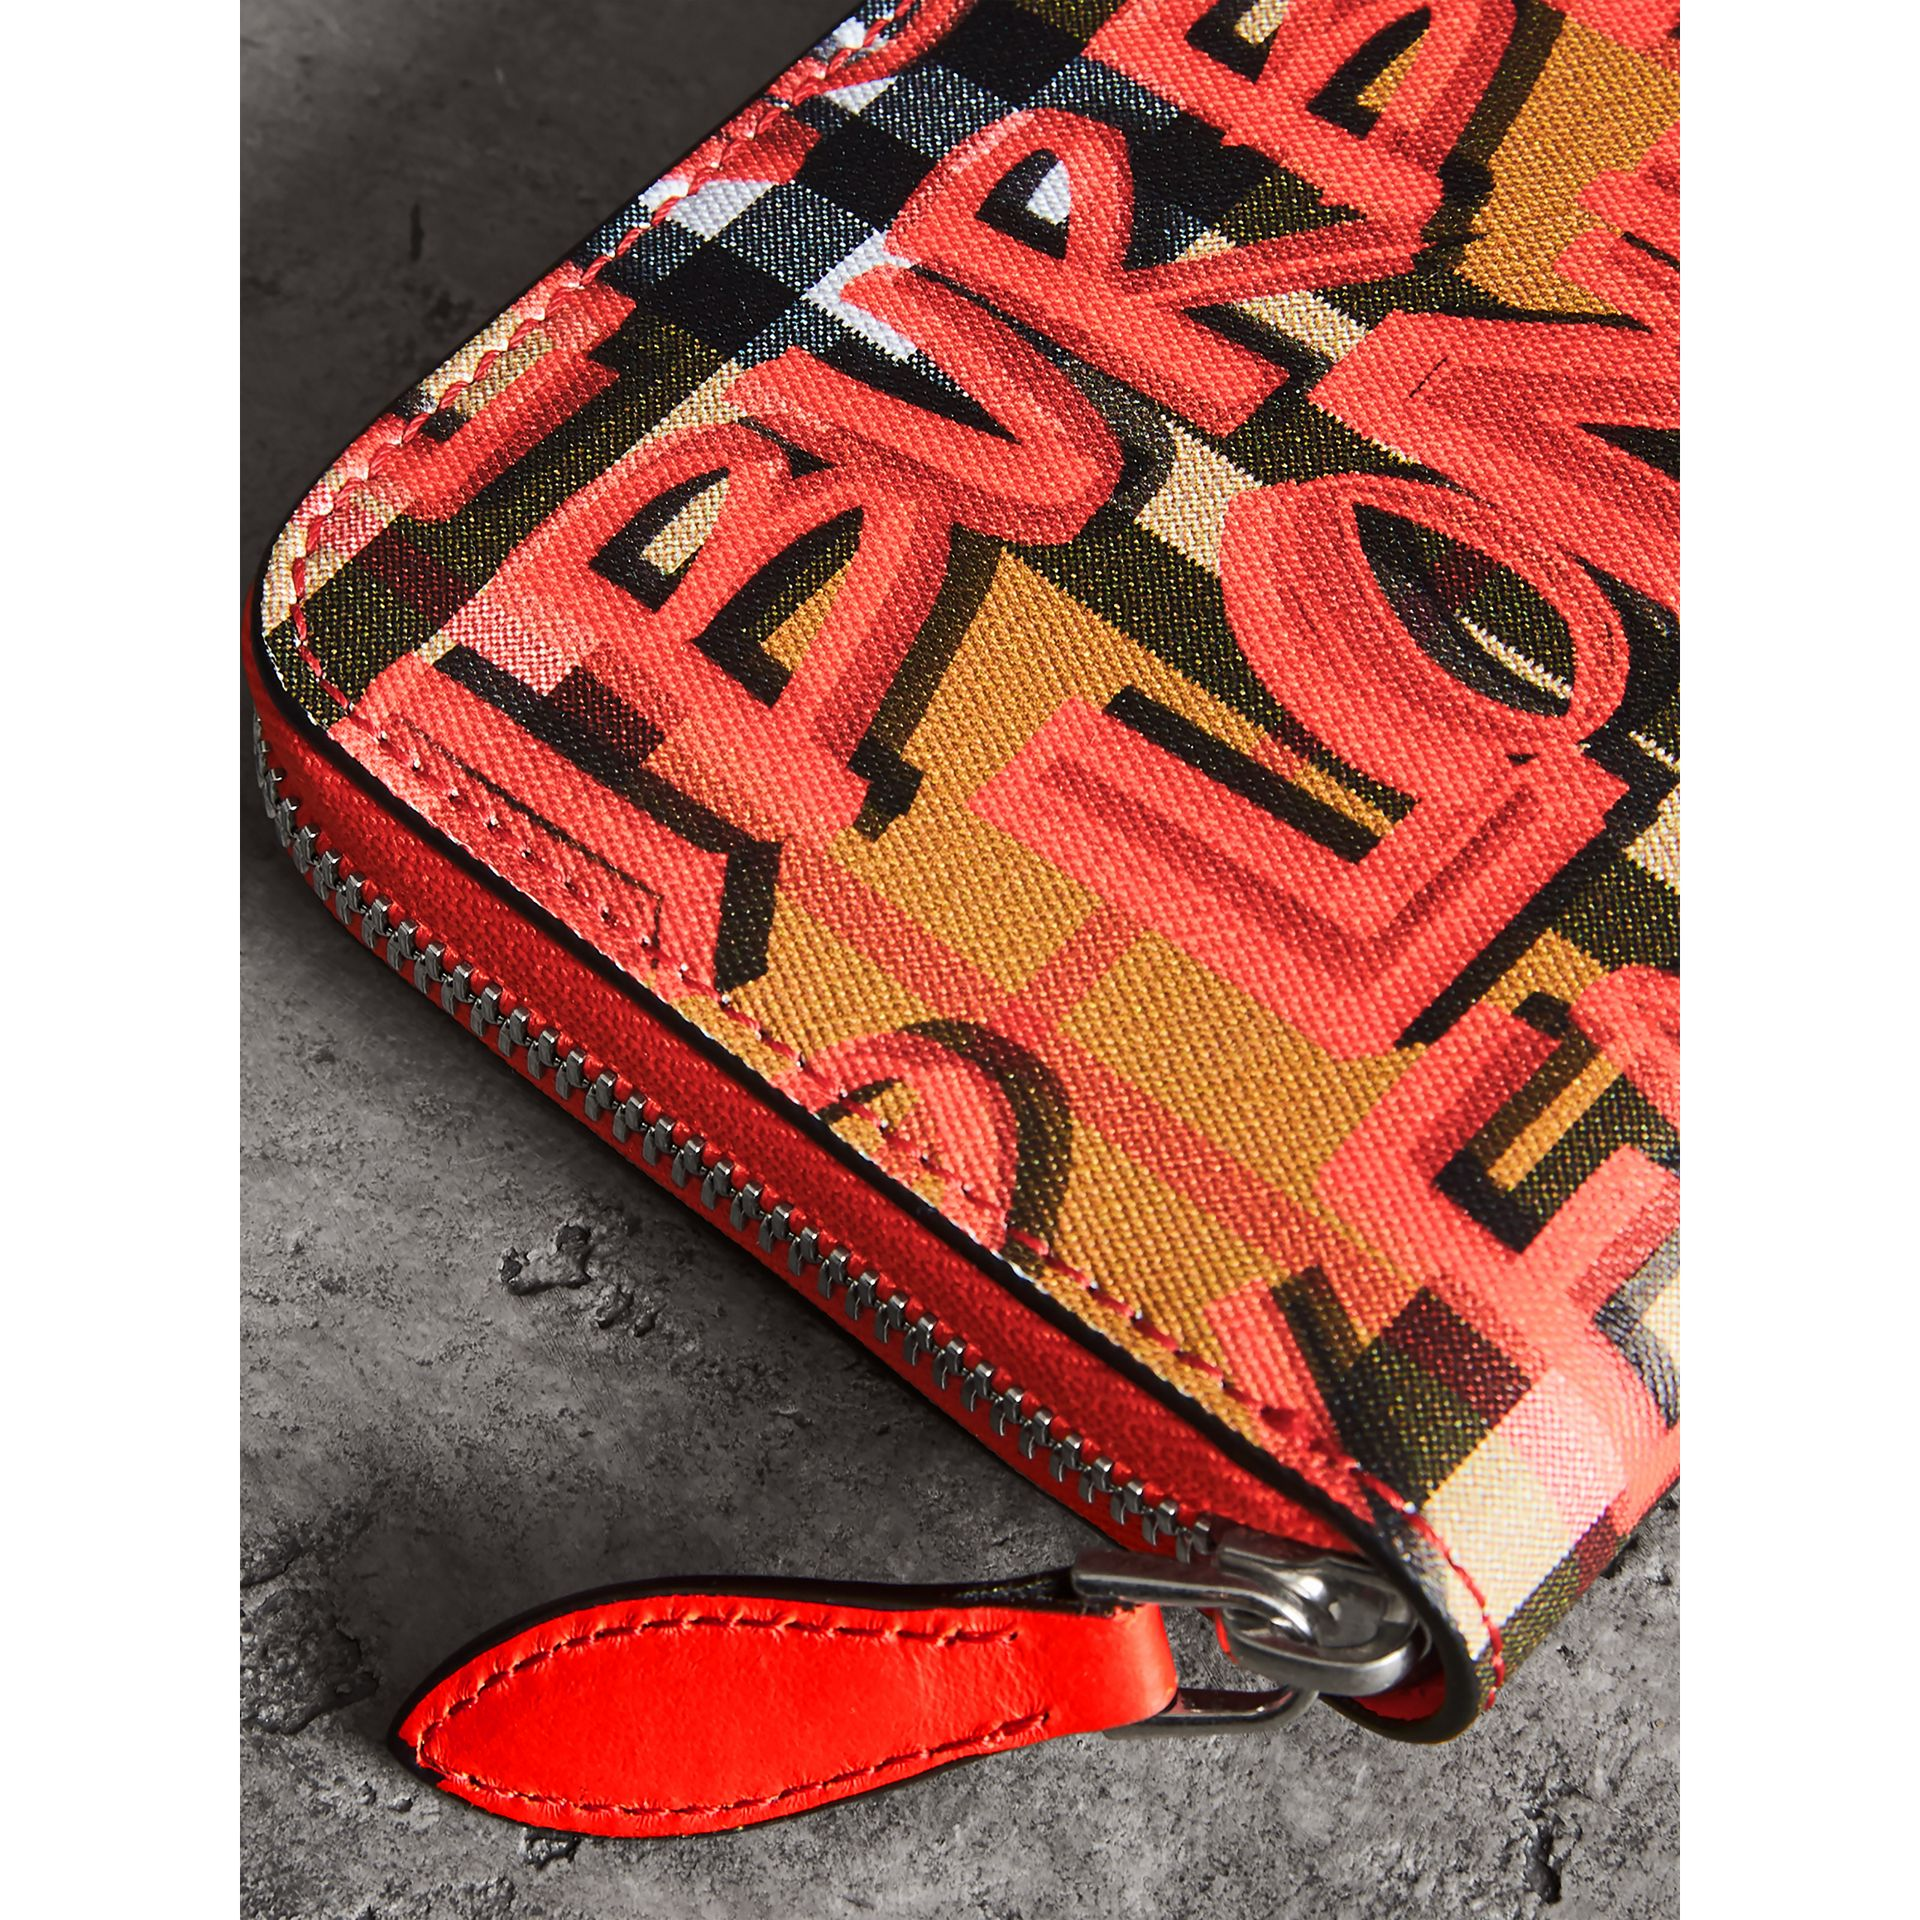 Graffiti Print Vintage Check Leather Ziparound Wallet in Red - Women | Burberry United Kingdom - gallery image 1